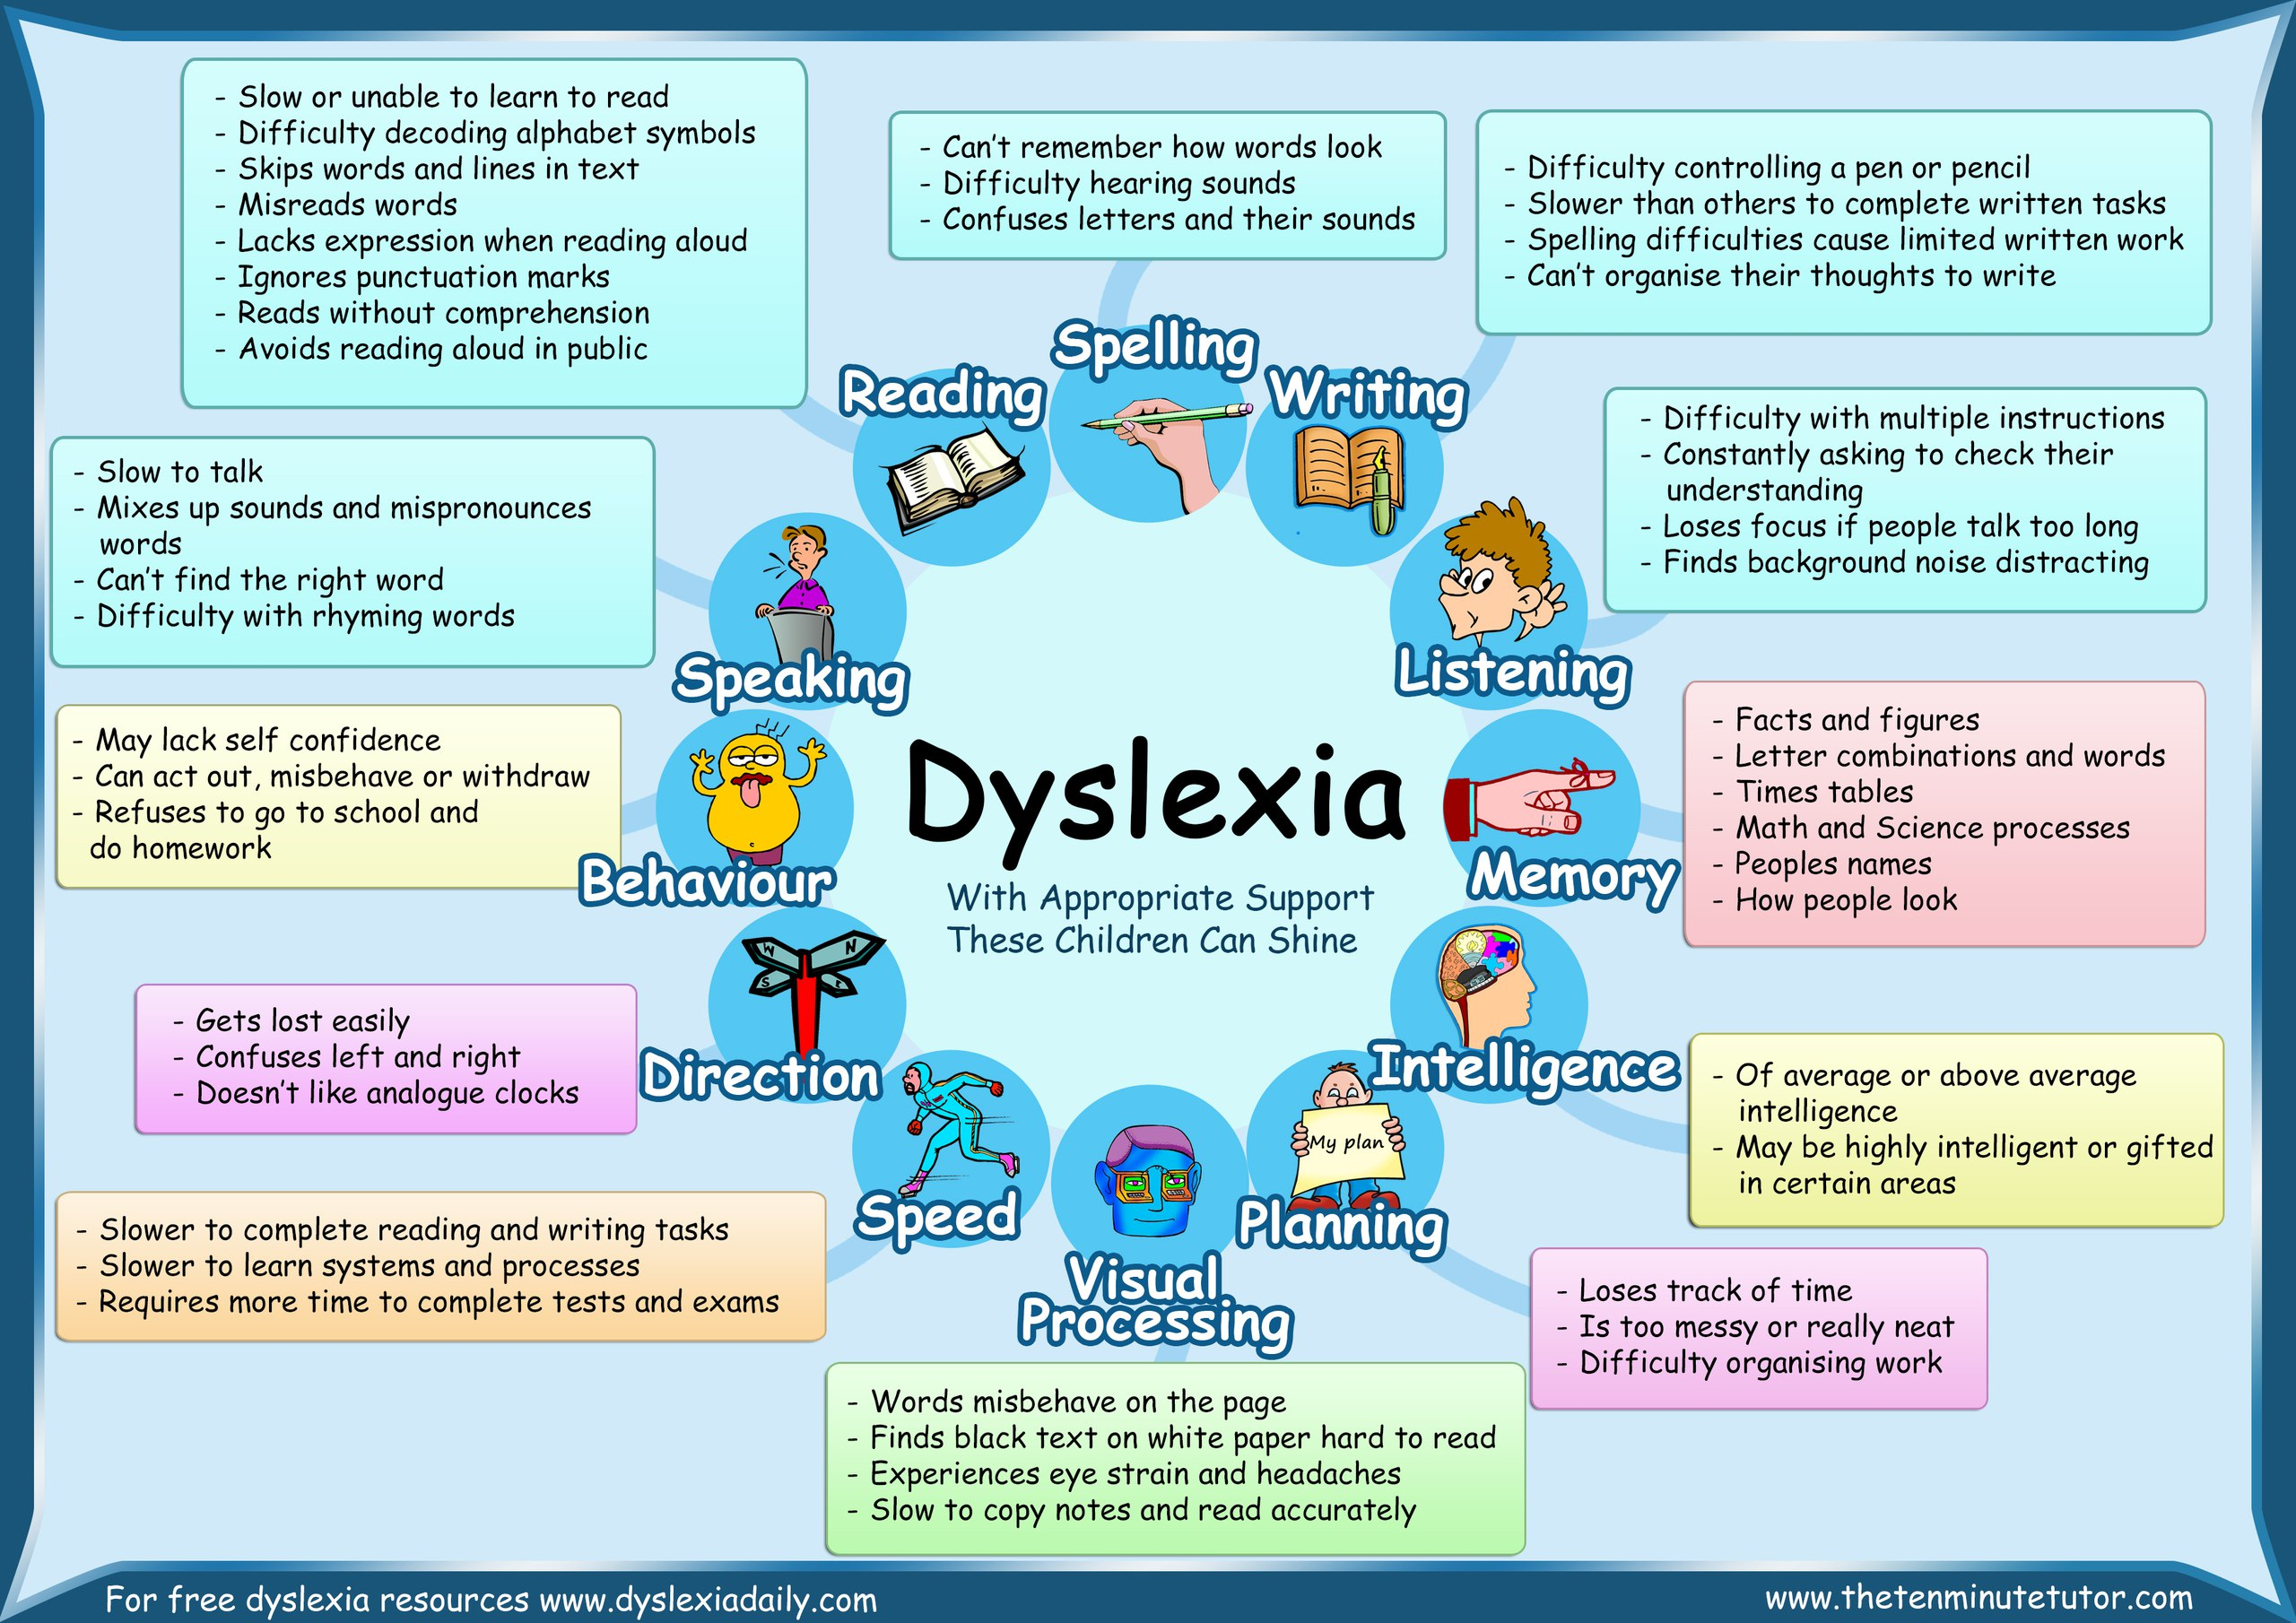 dyslexia in pediatrics essay